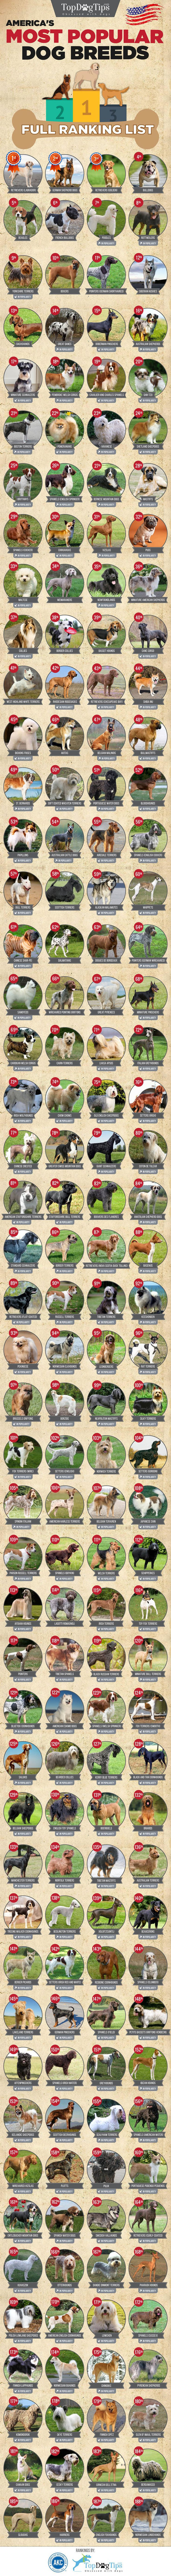 This infographic, with rankings of 188 of Americas most popular dog breeds, will show you how dog breed positions changed over the last year.